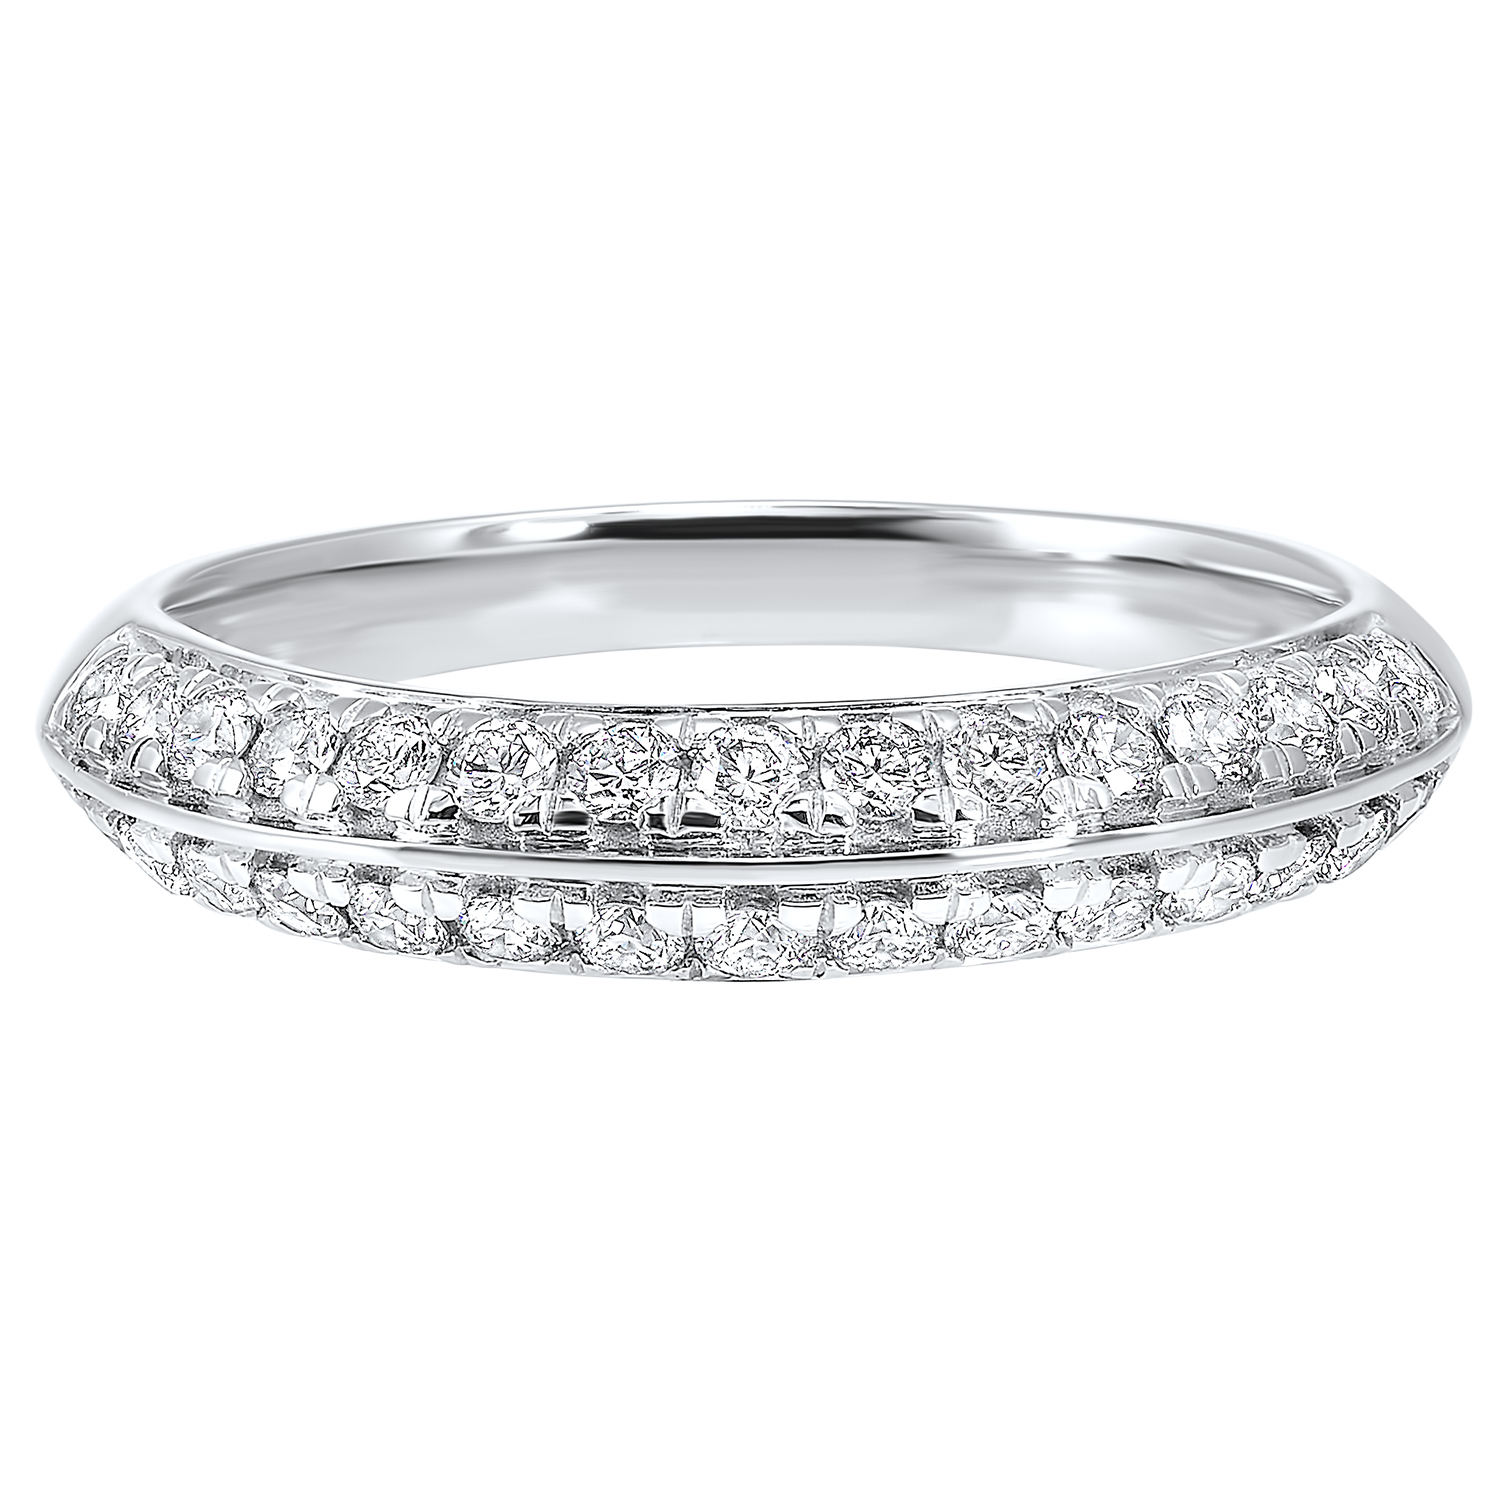 Multi-Row Diamond Ring in 14K White Gold (1/2 ct. tw.) Moseley Diamond Showcase Inc Columbia, SC